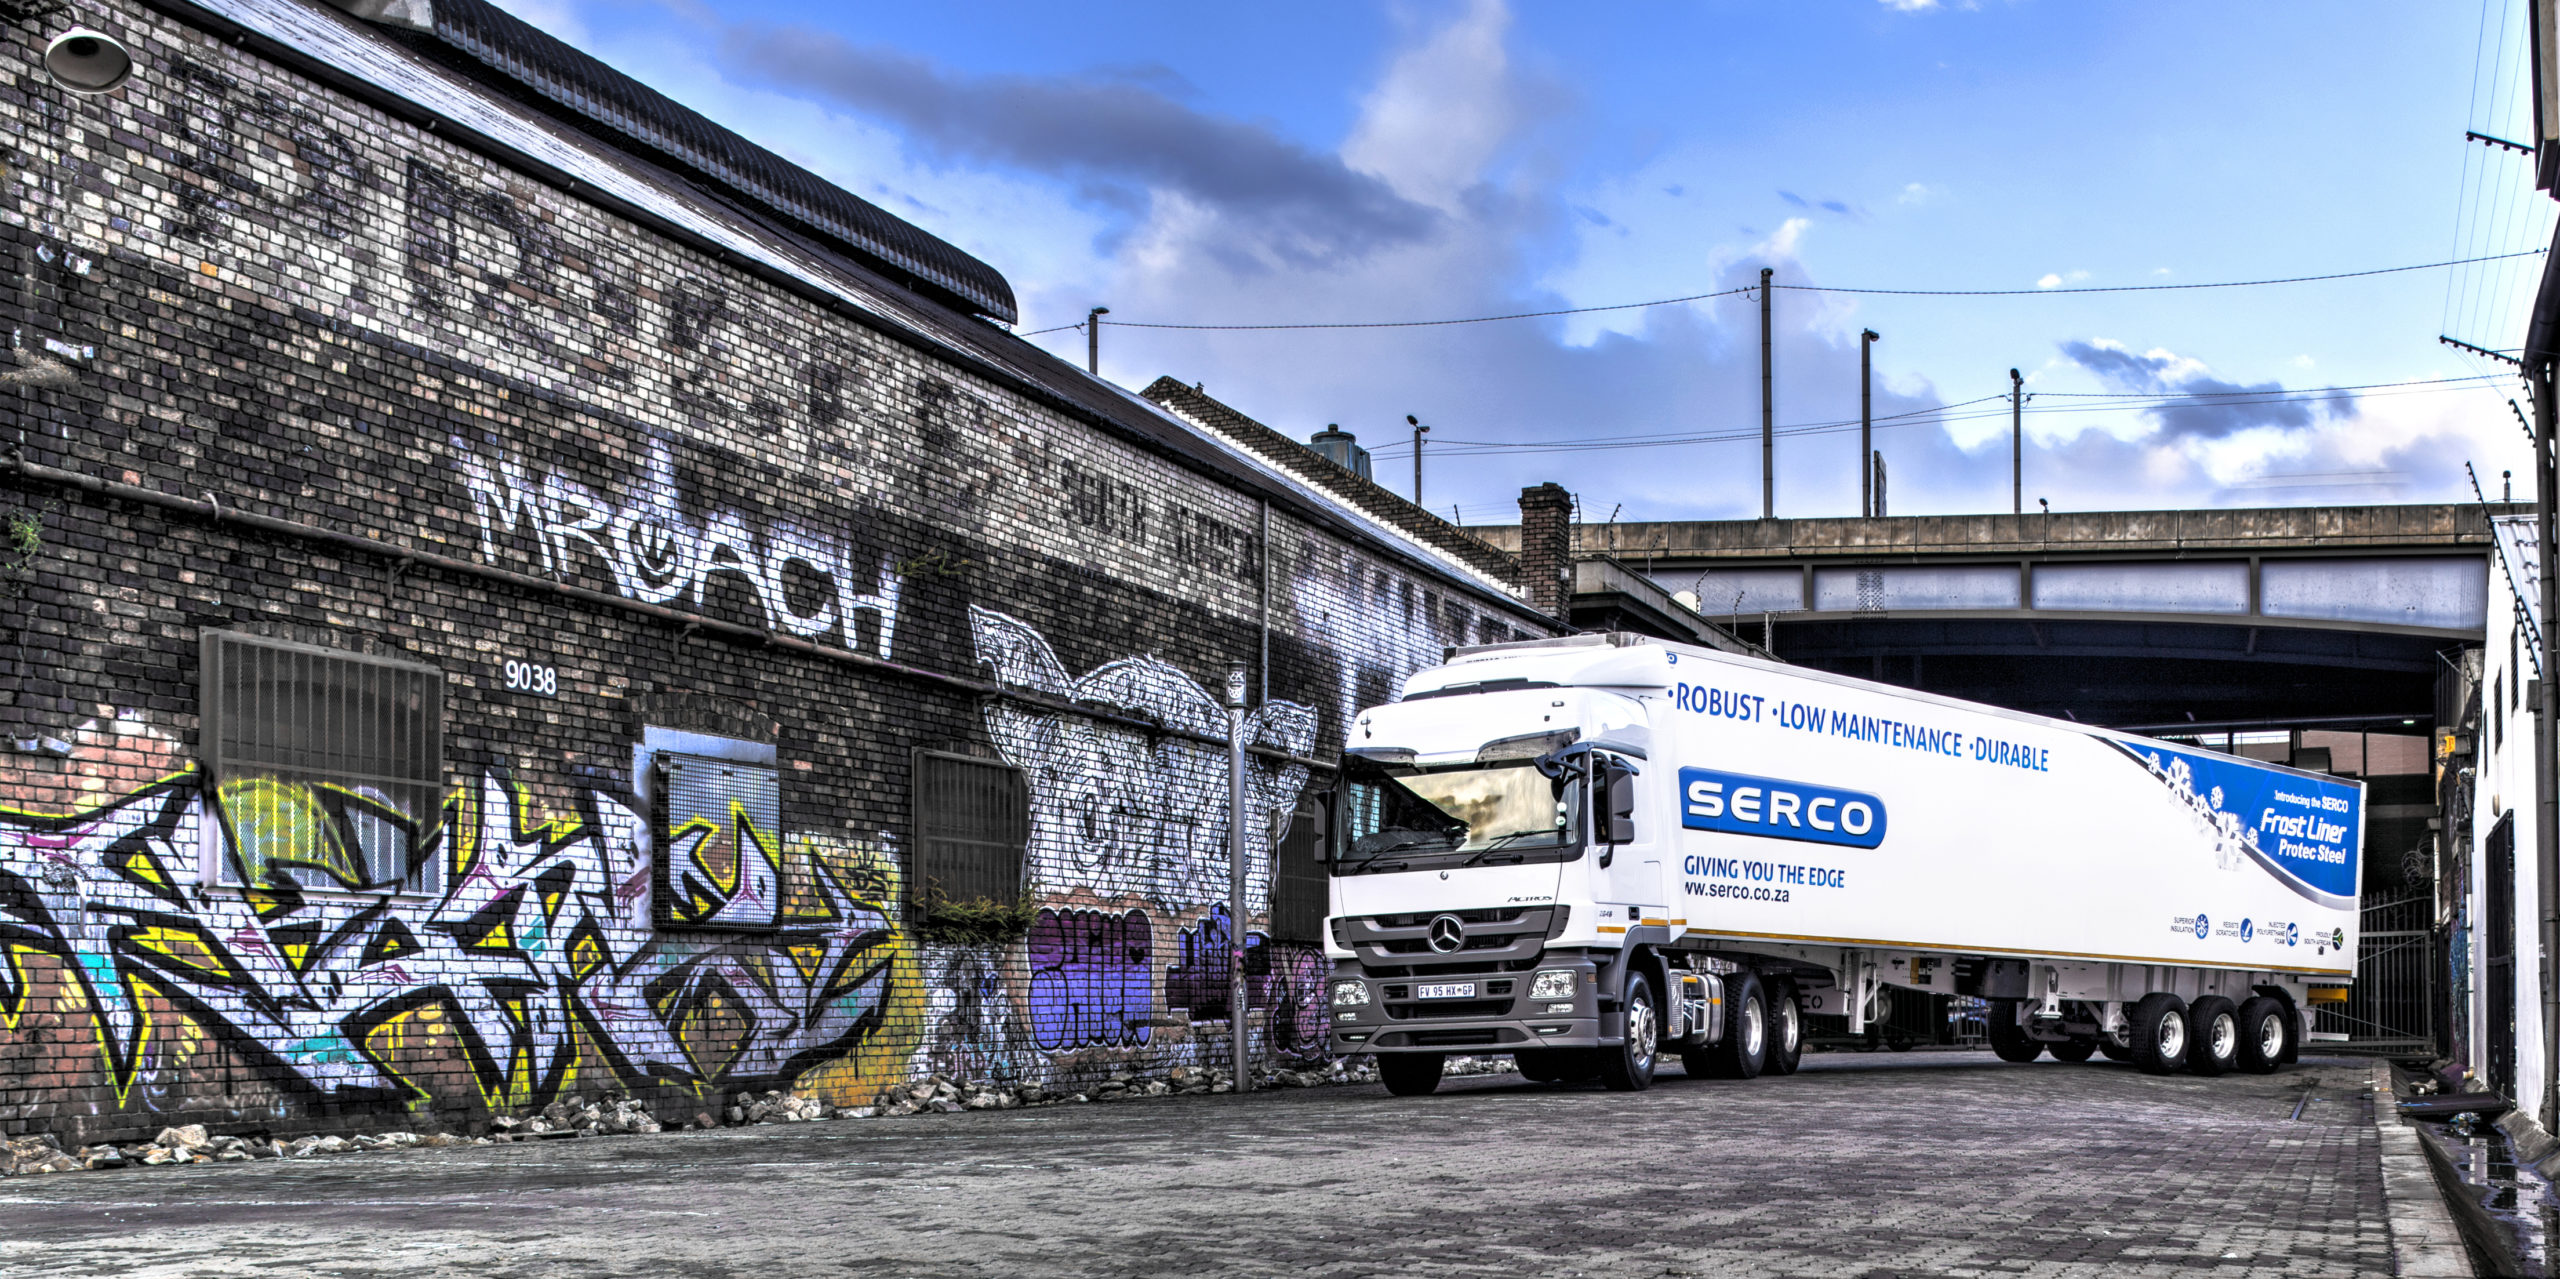 Serco Protec: The new Protec Steel Frostliner has been well received with Serco's order book for trailers being 95% Protec Steel.